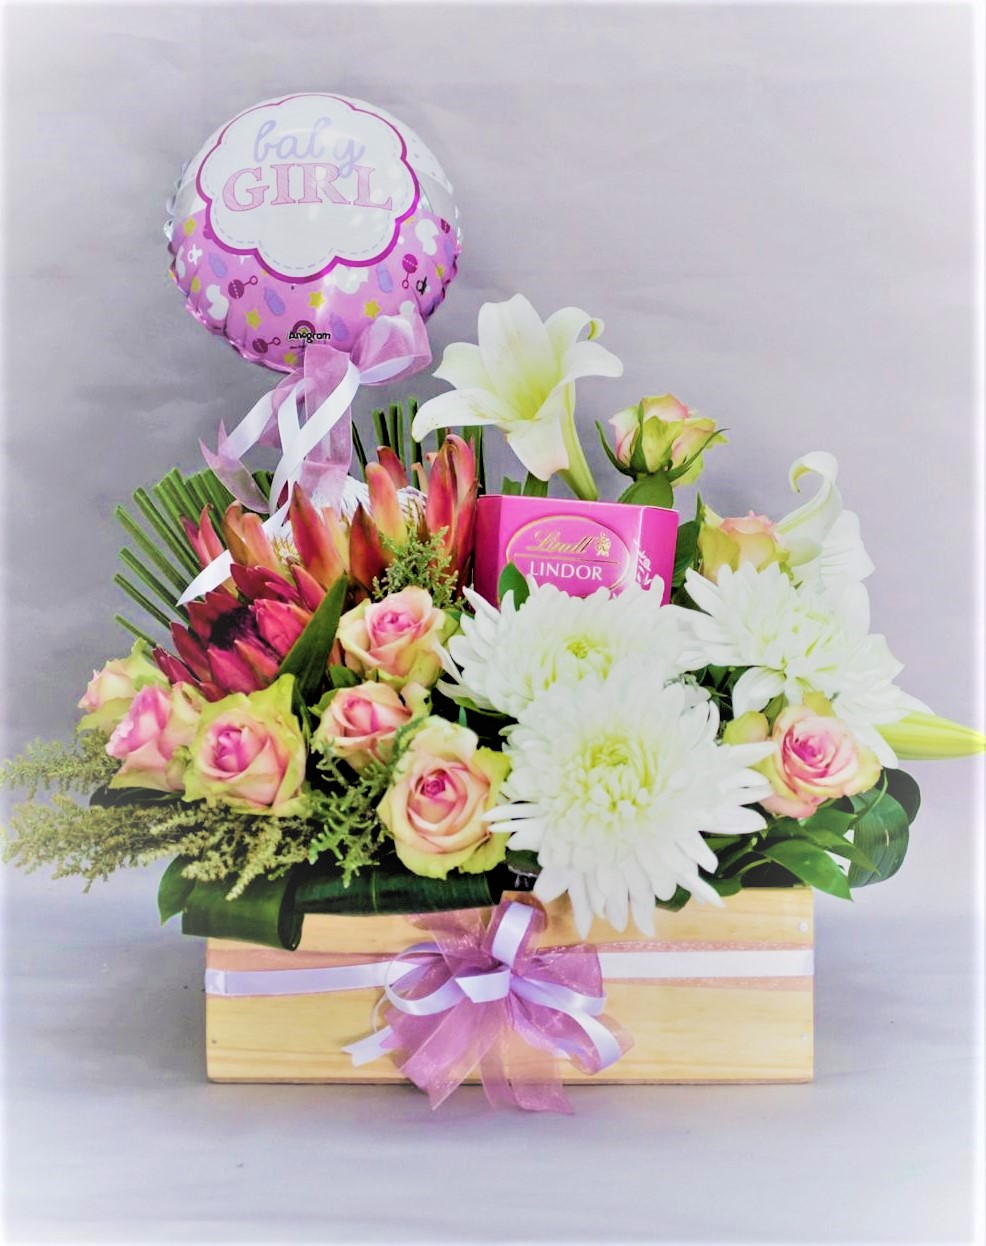 Wooden Container, Strawberry Lindt Chocolates, Balloon And Flowers